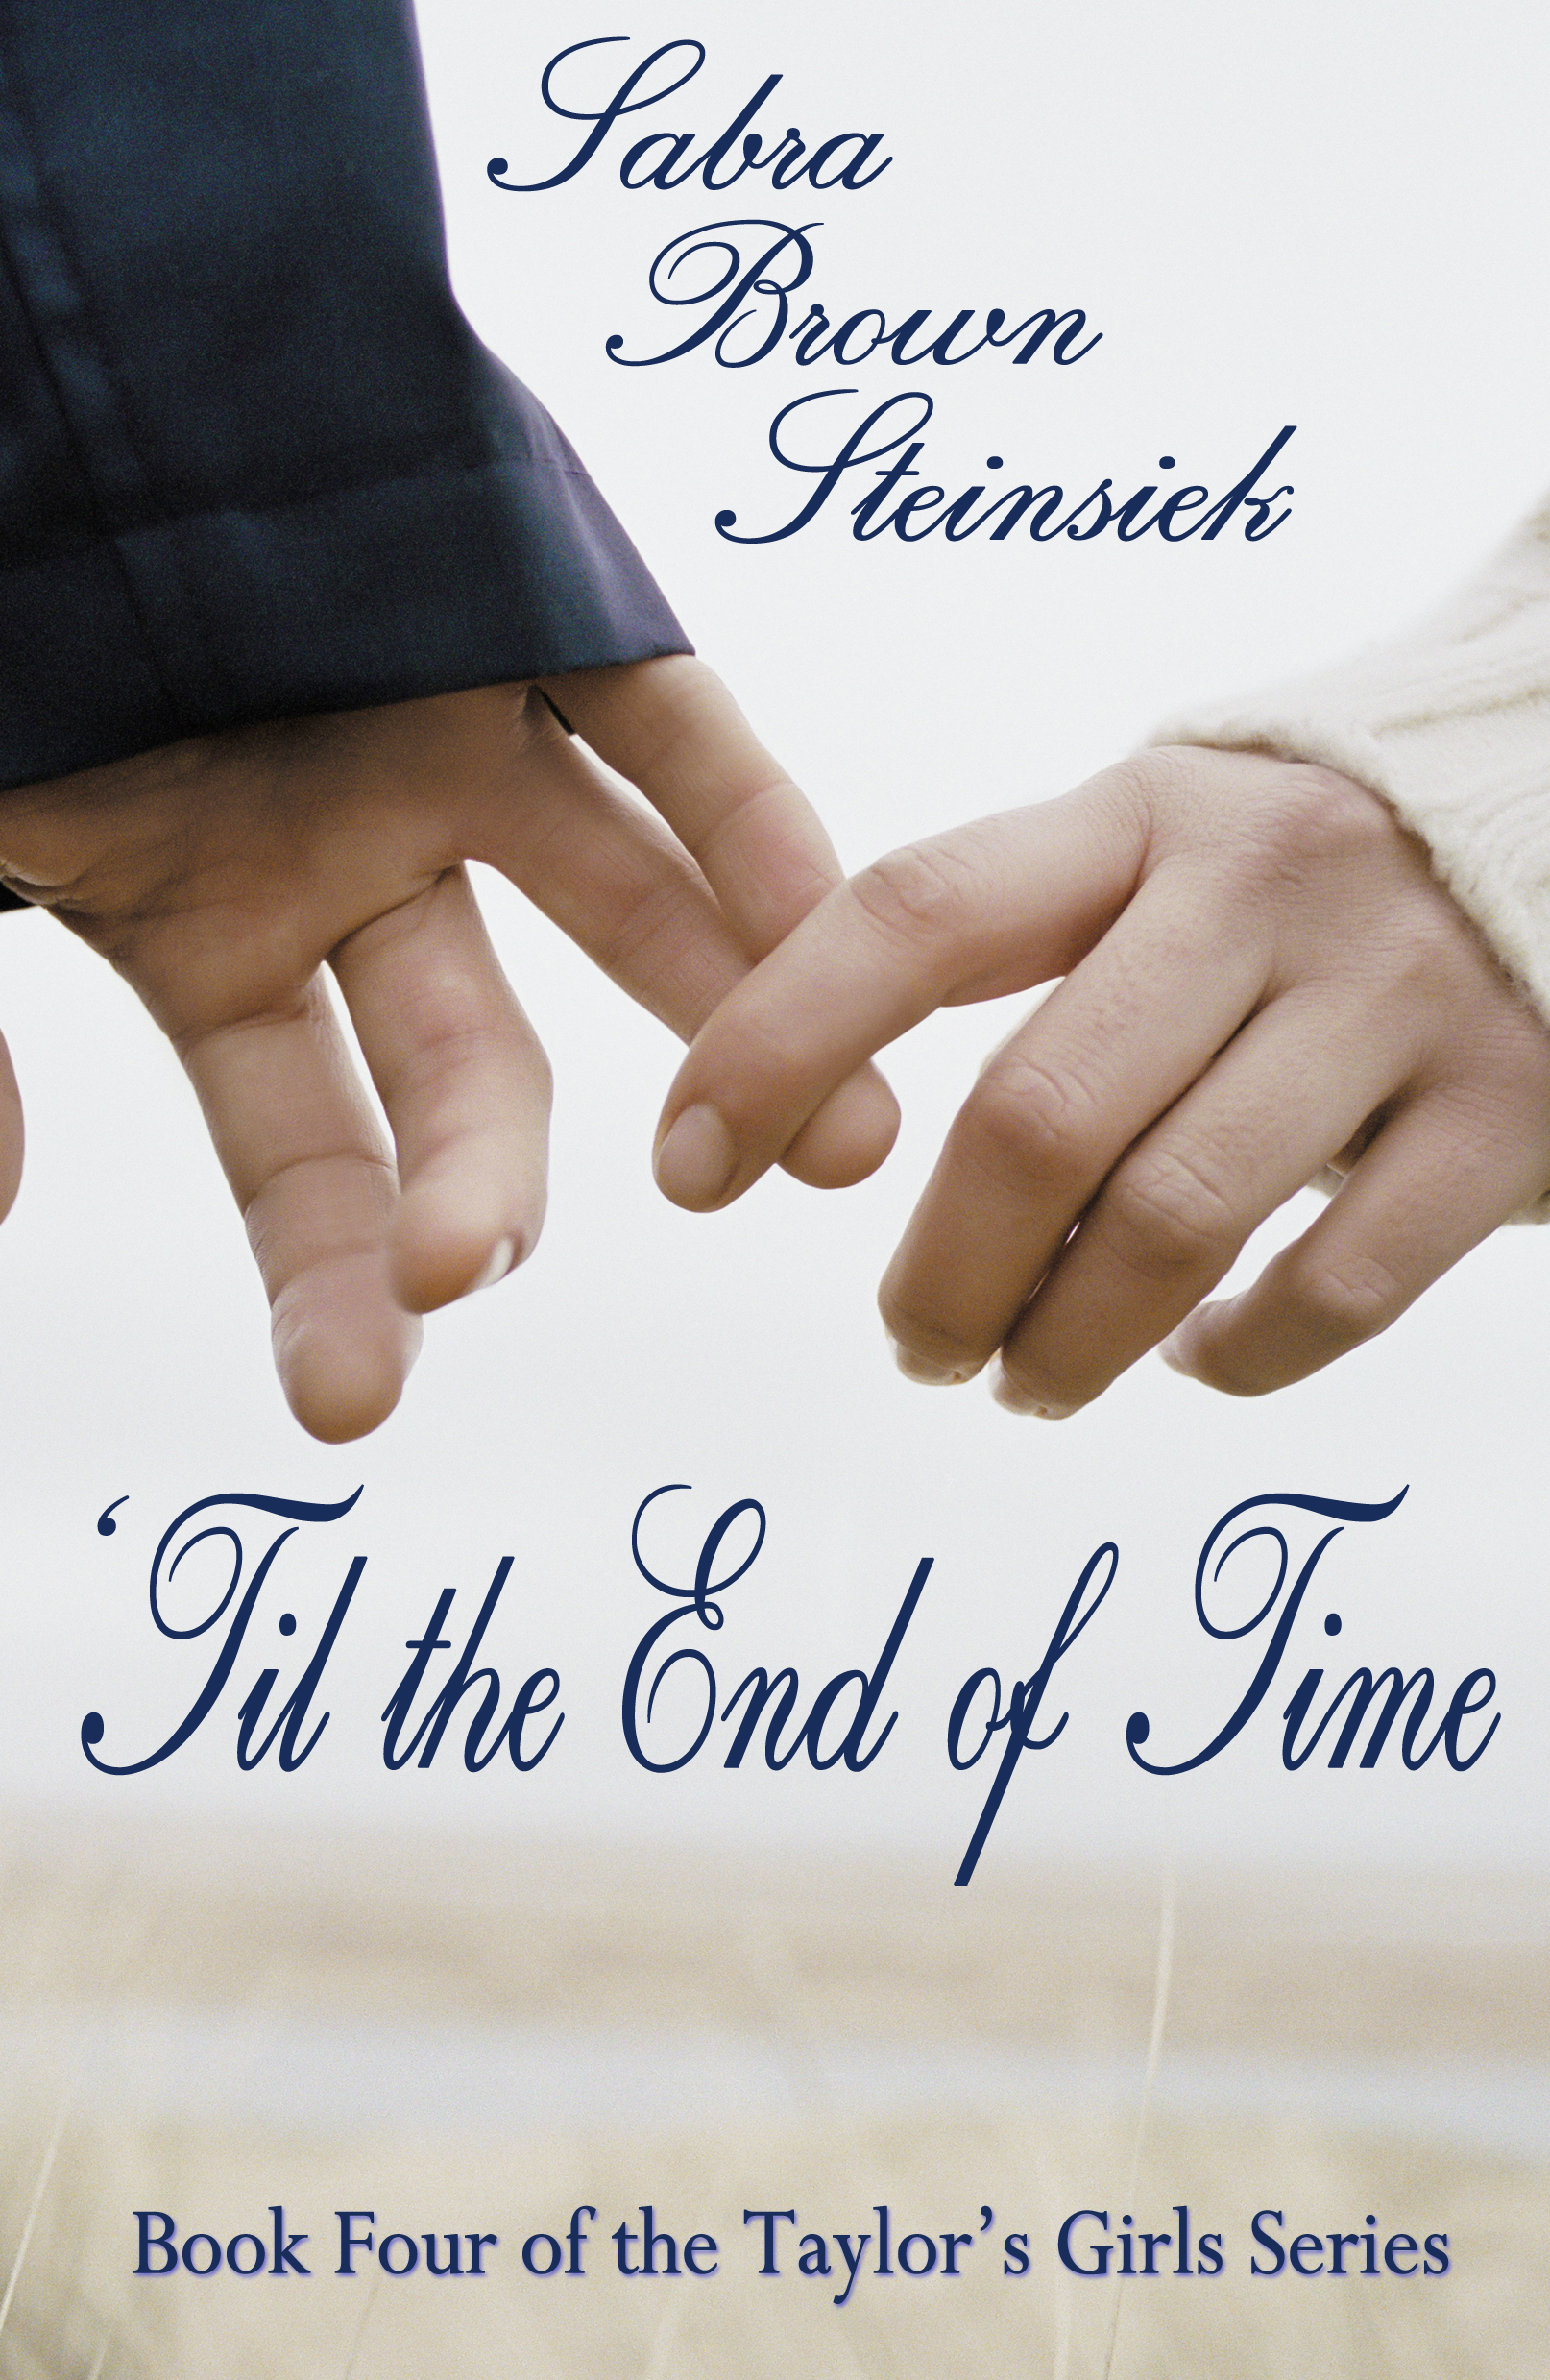 'Til the End of Time